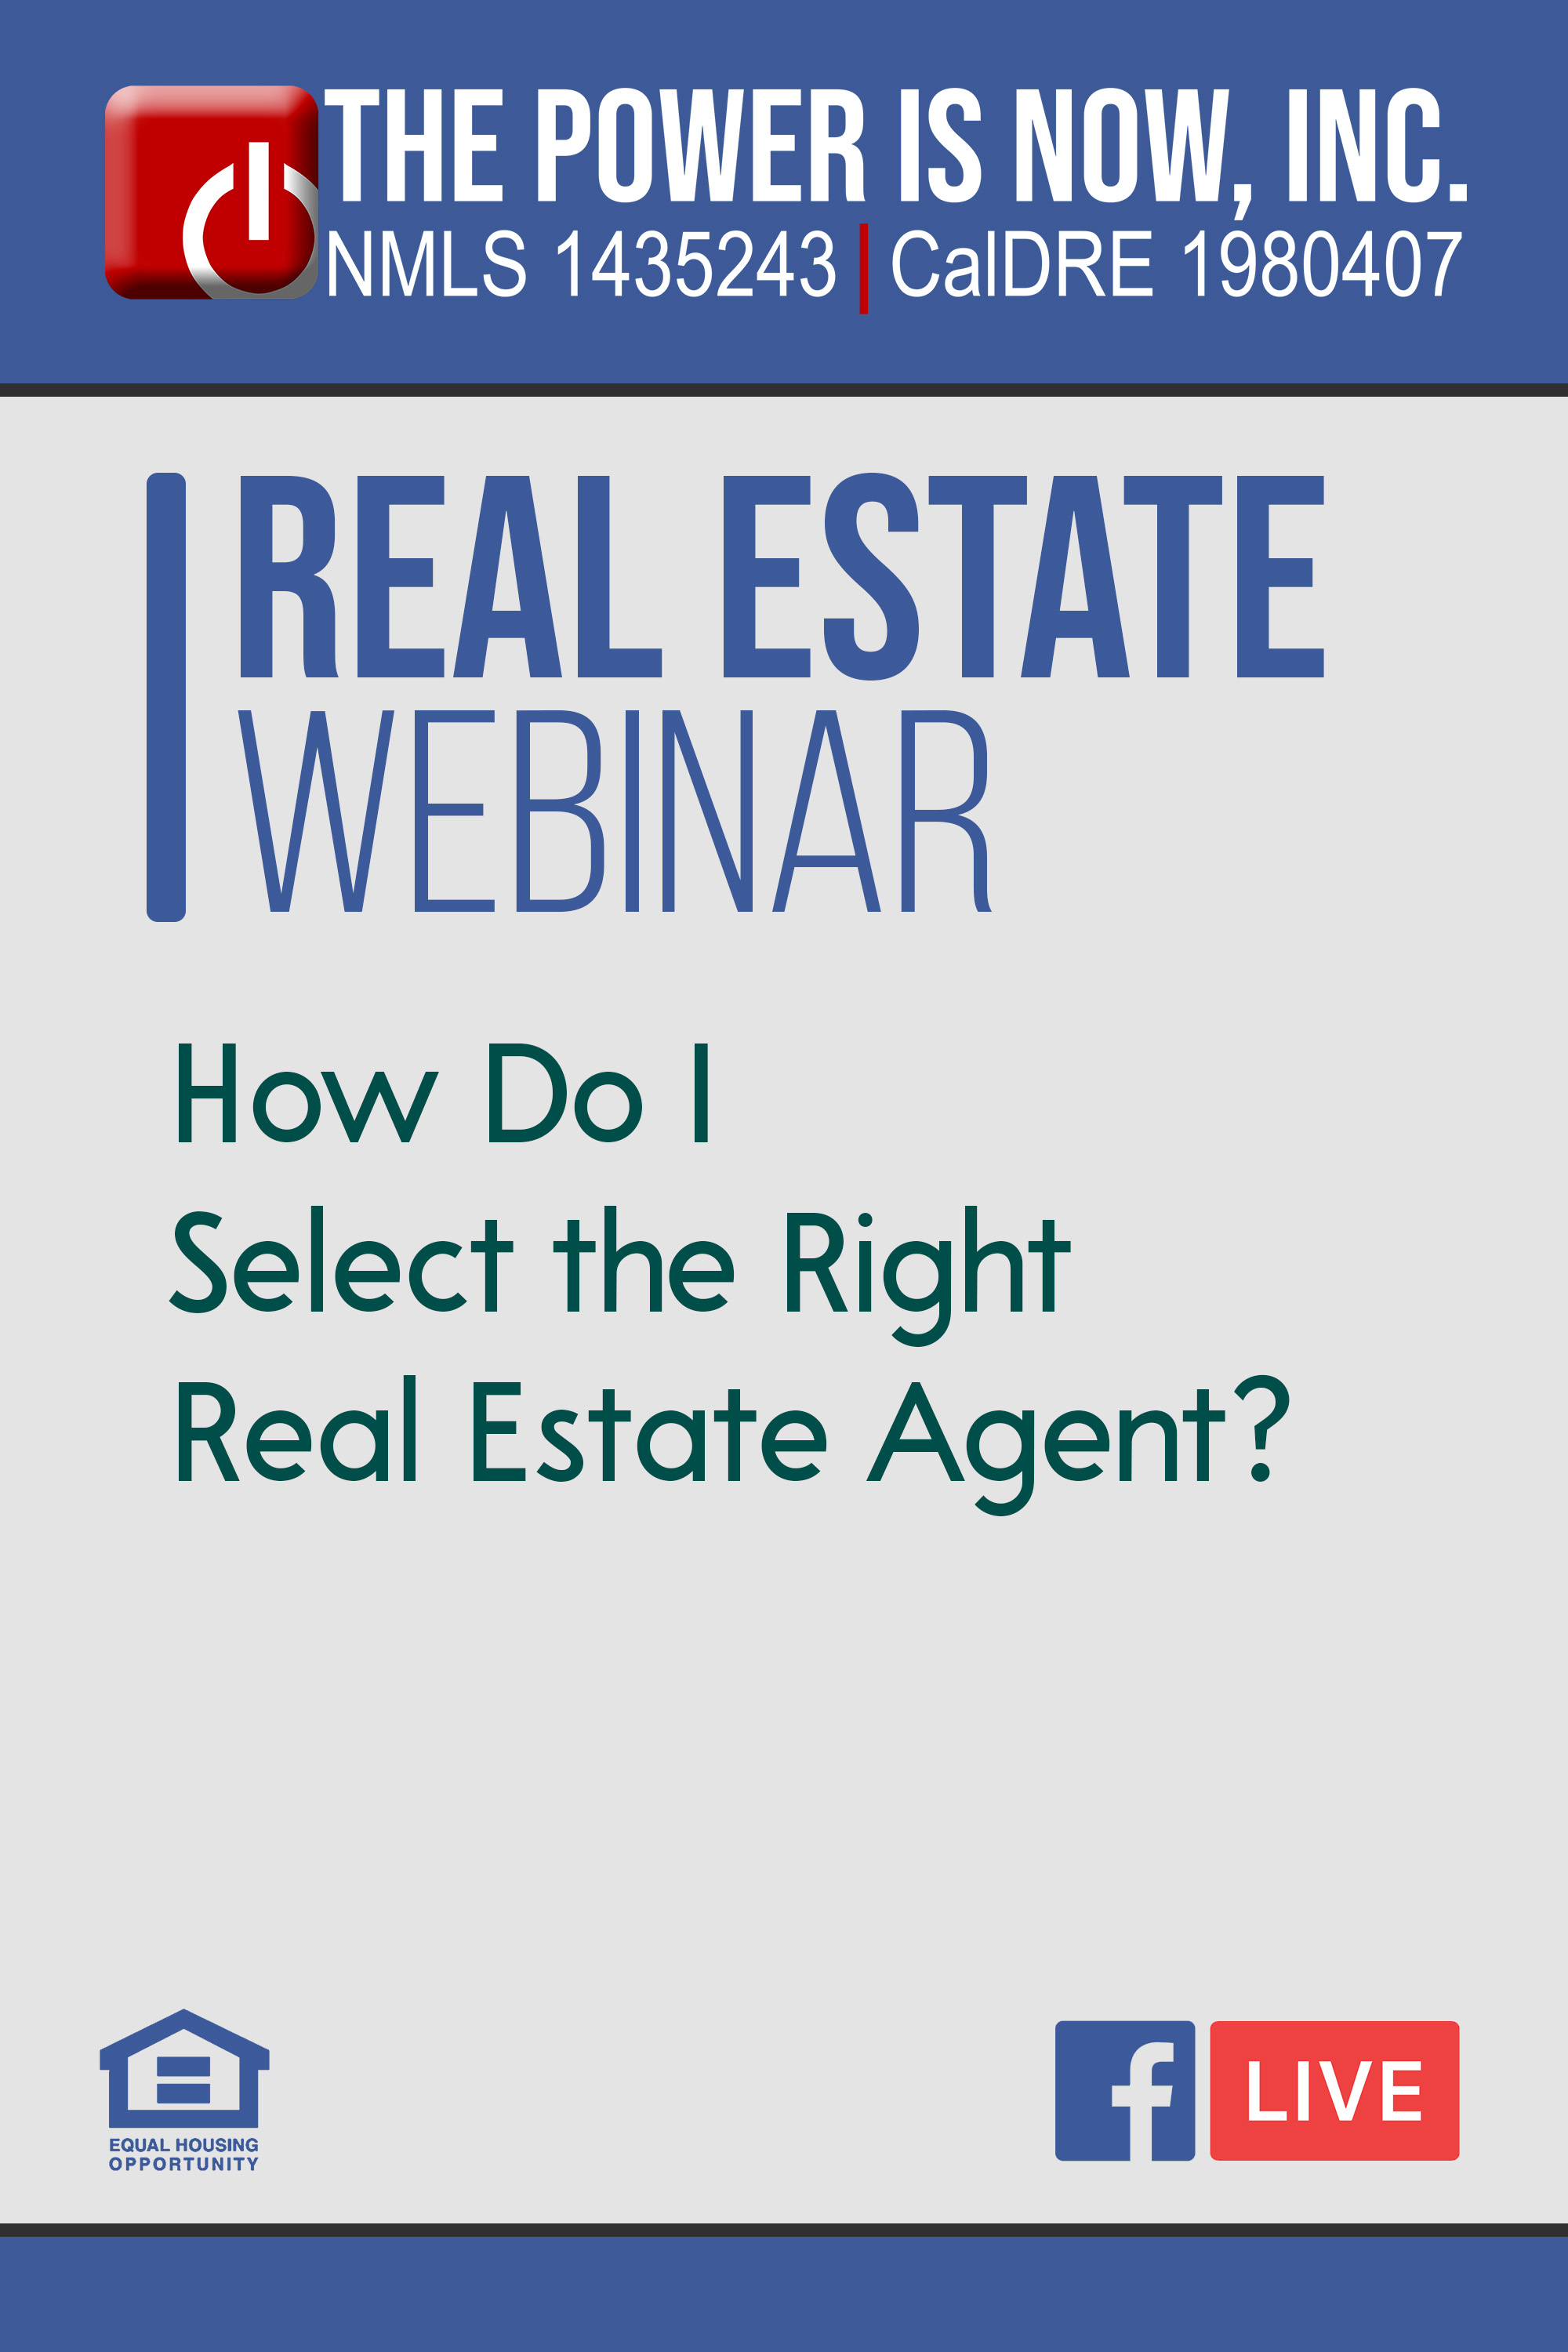 How Do I Select the Right Real Estate Agent?